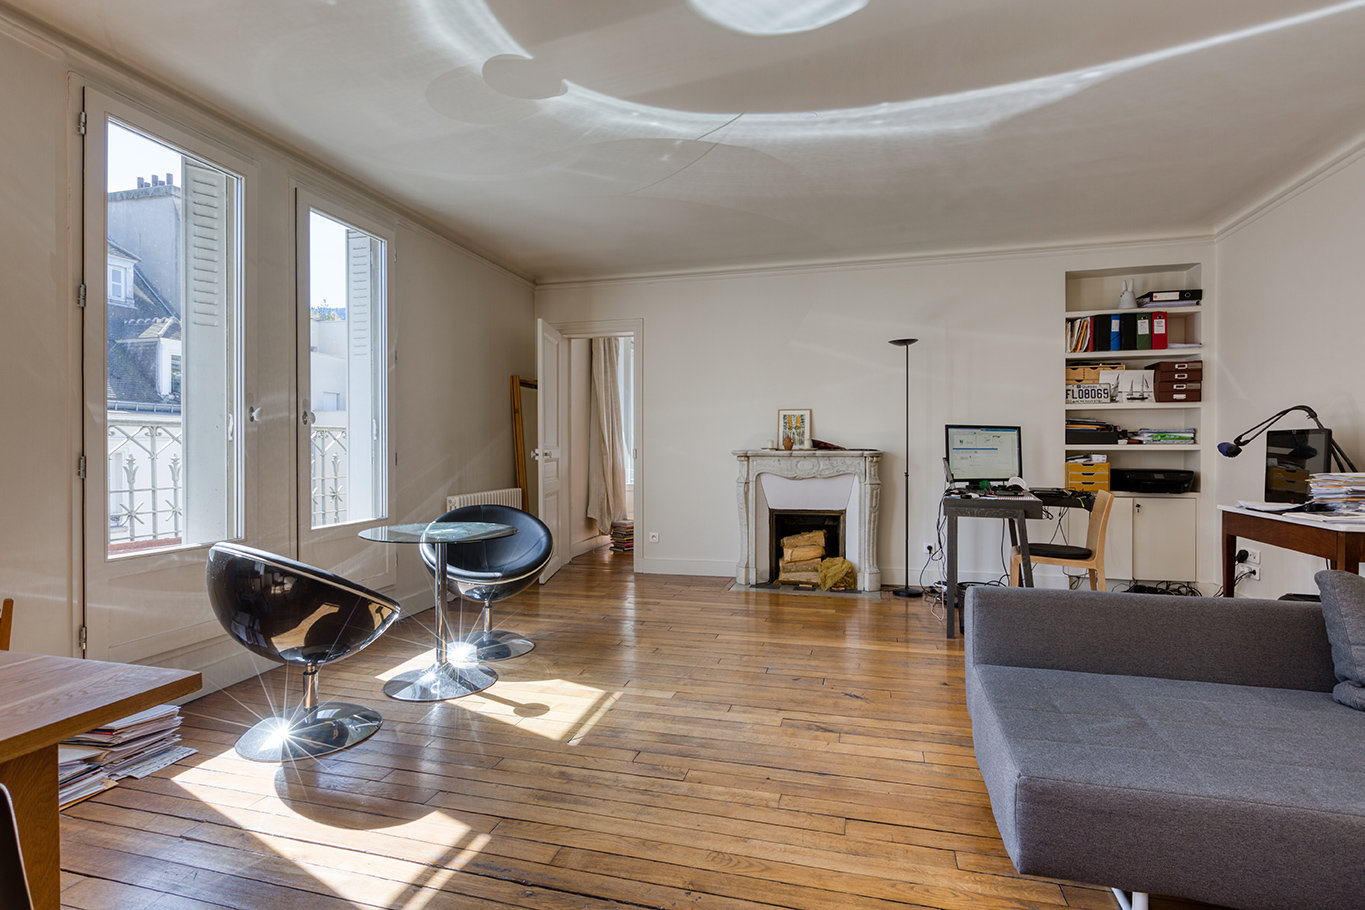 Sale Apartment - Paris 3rd (Paris 3ème)